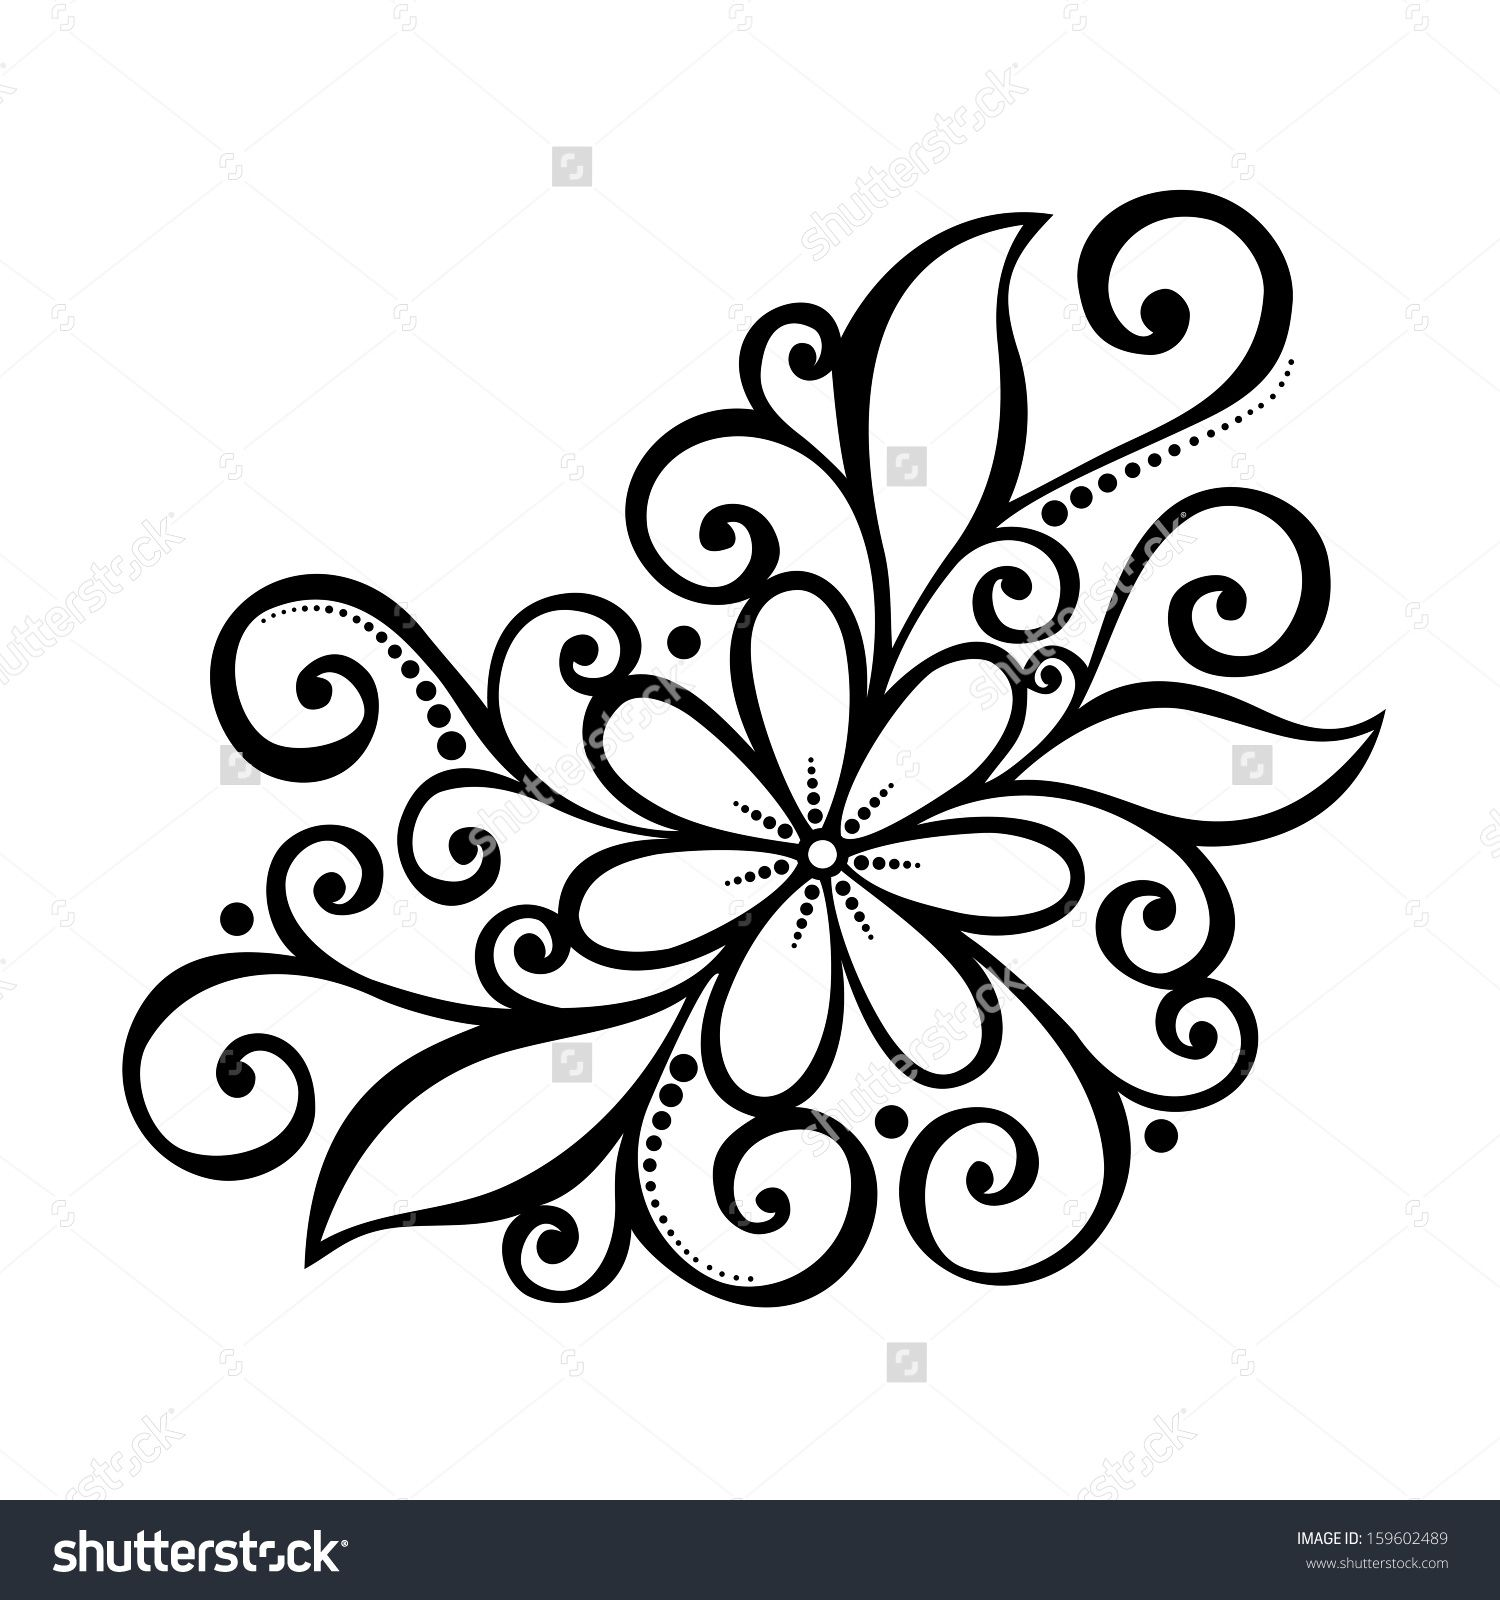 Beautiful Flower Drawing Photos Flowers To Draw Drawings Art Gallery